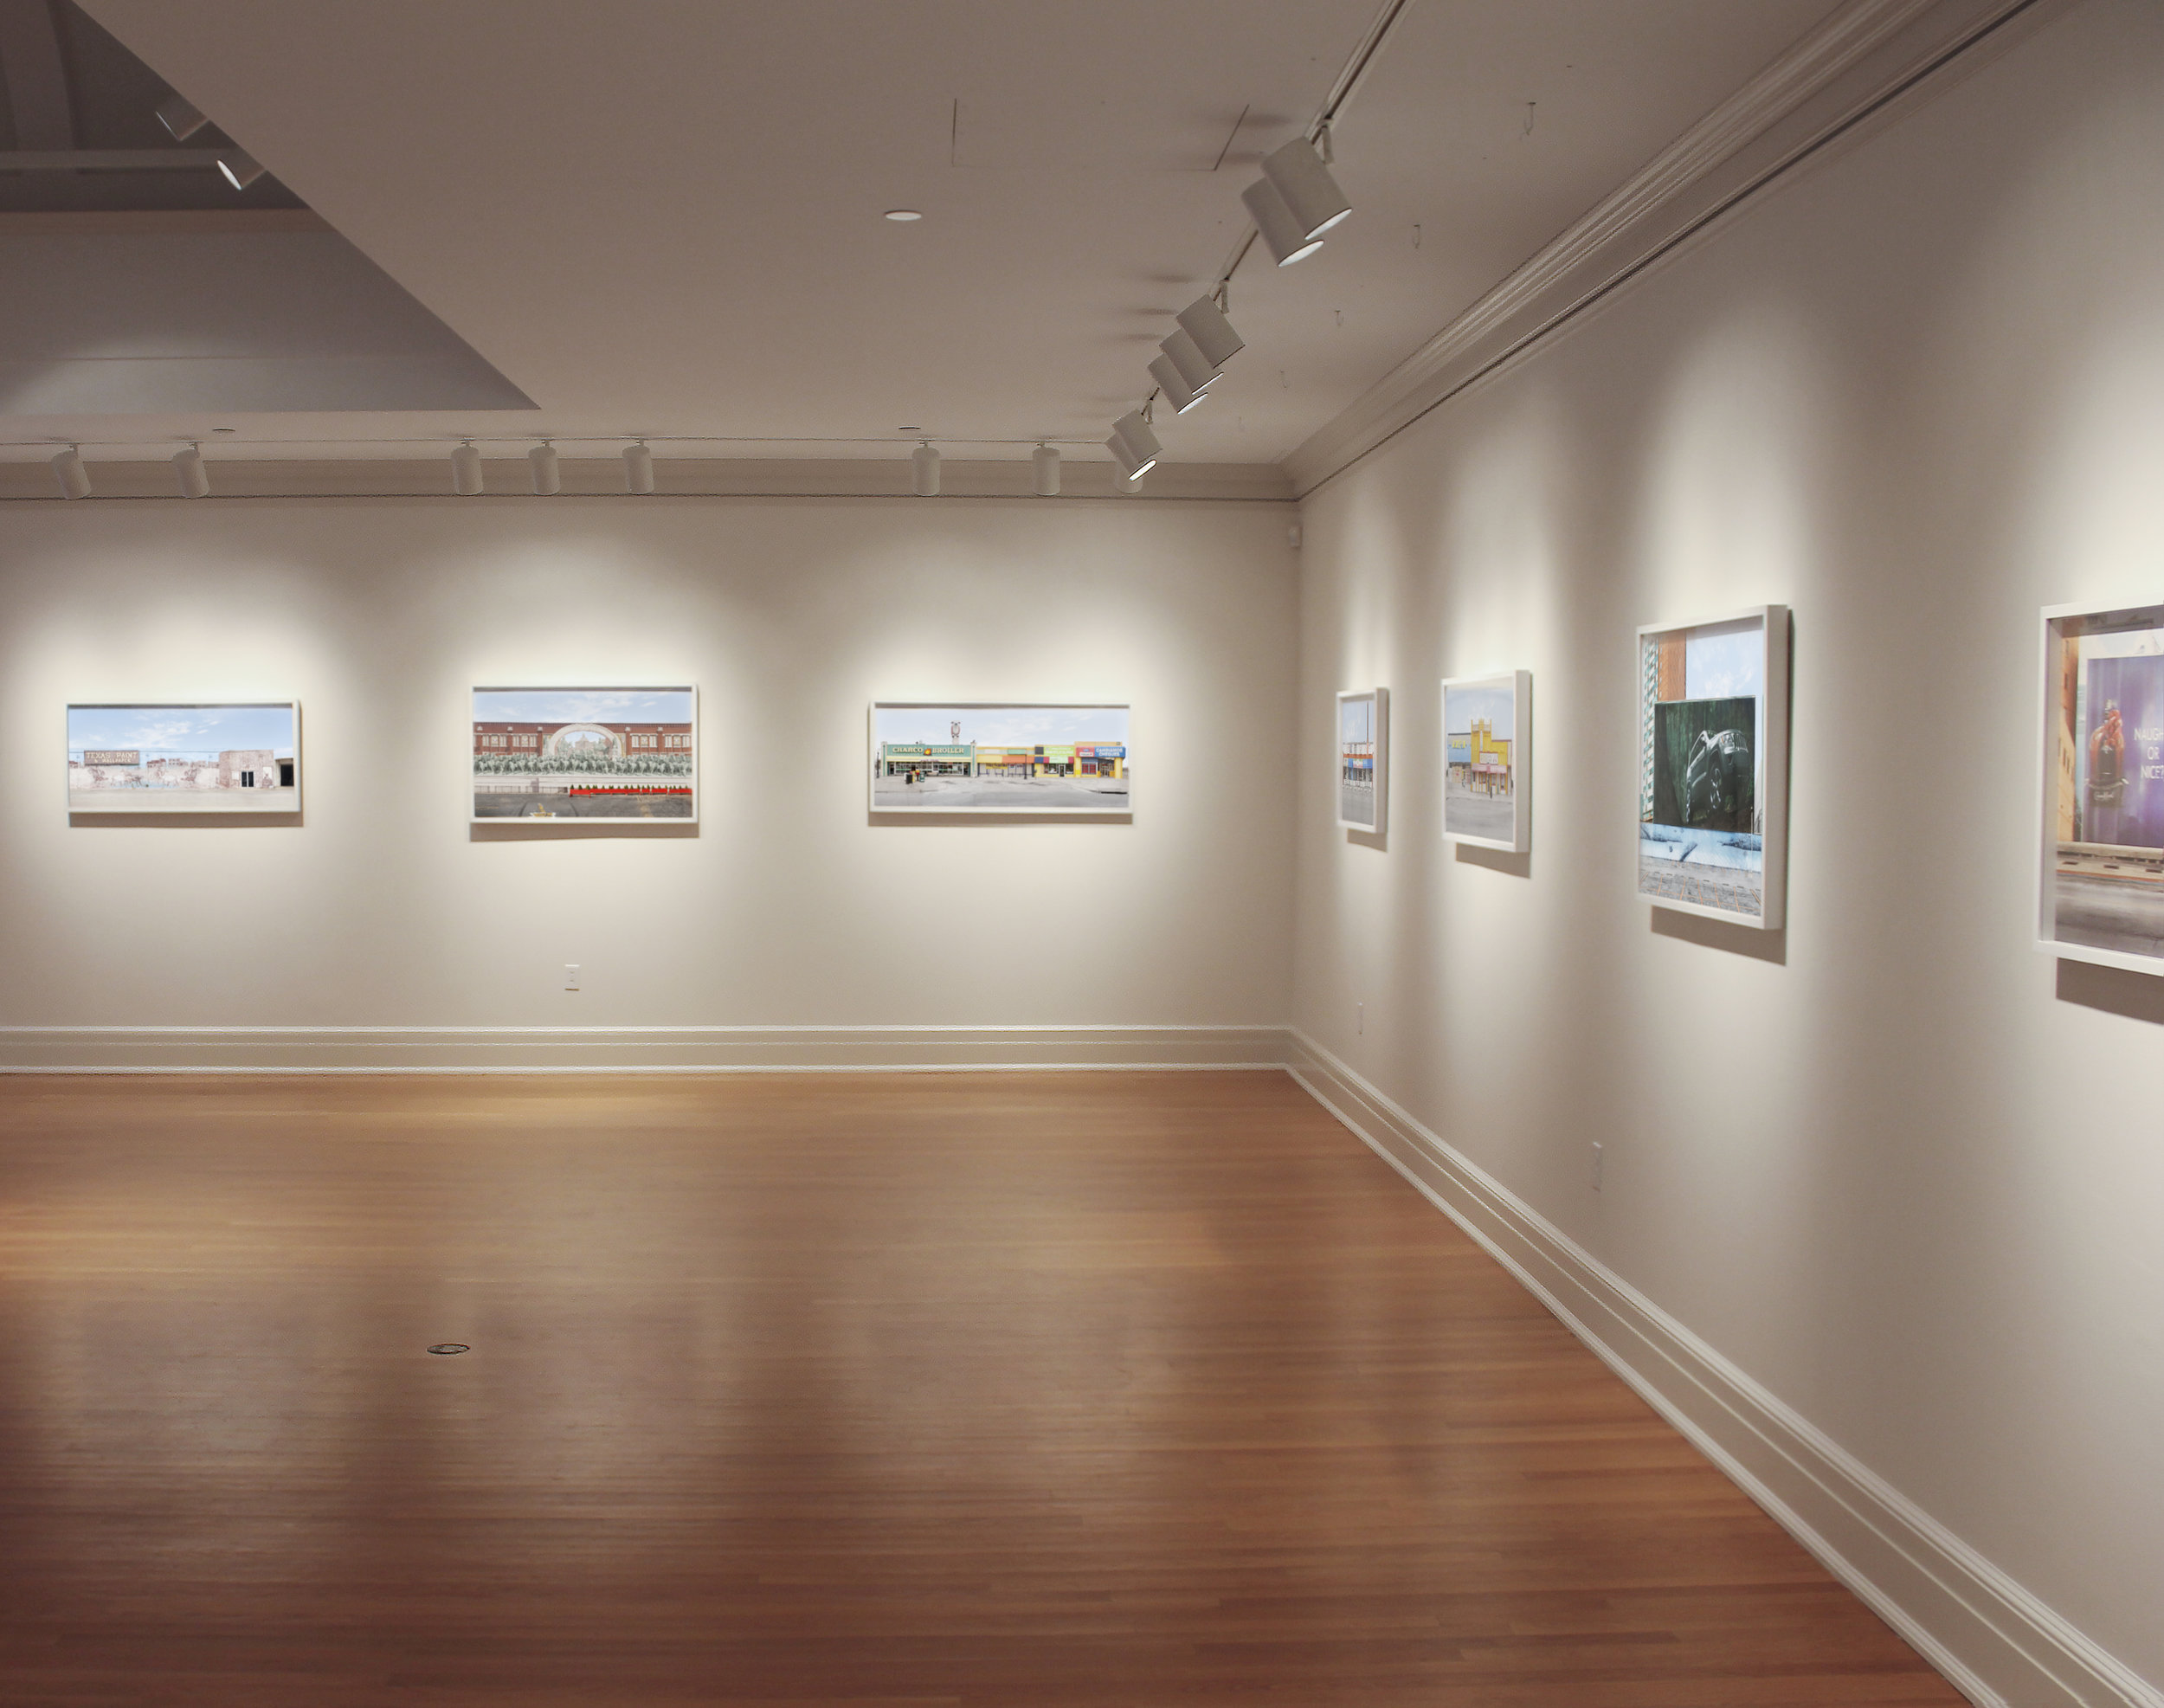 Installation view,  Manifest Destiny  at the Tremaine Gallery at the Hotchkiss School, Lakeville, CT, 2013